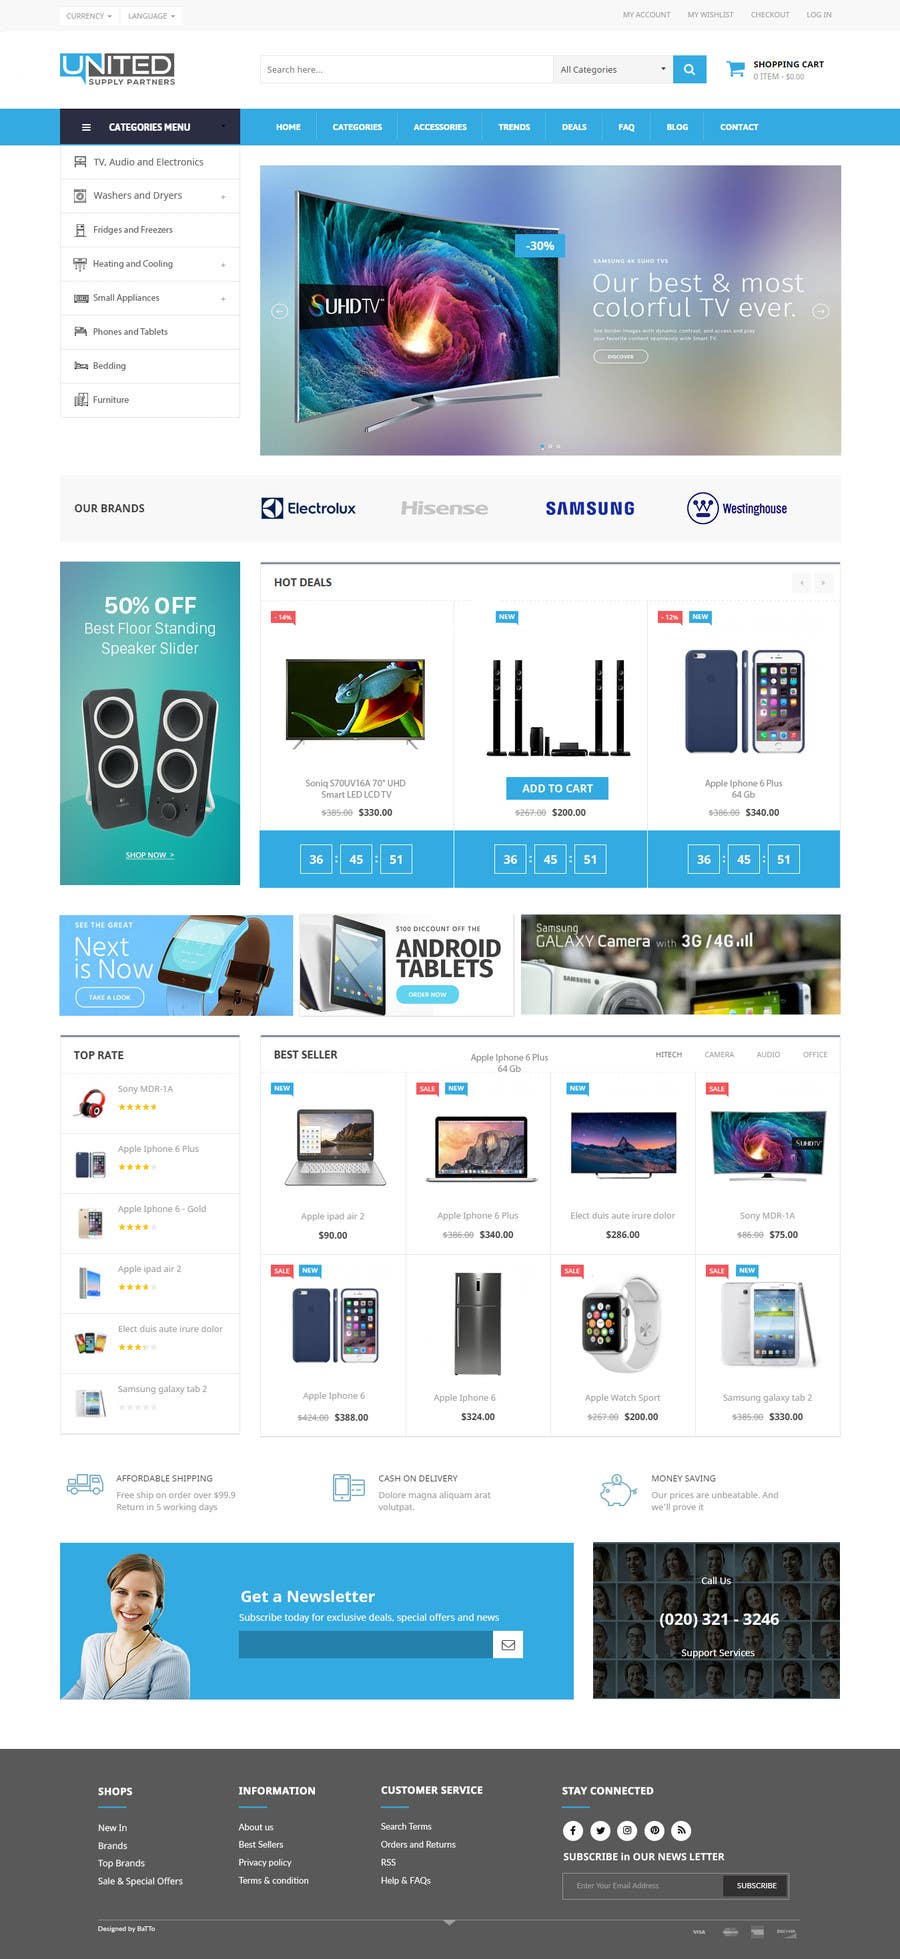 Proposition n°16 du concours Re-design teh layout to our website homepage